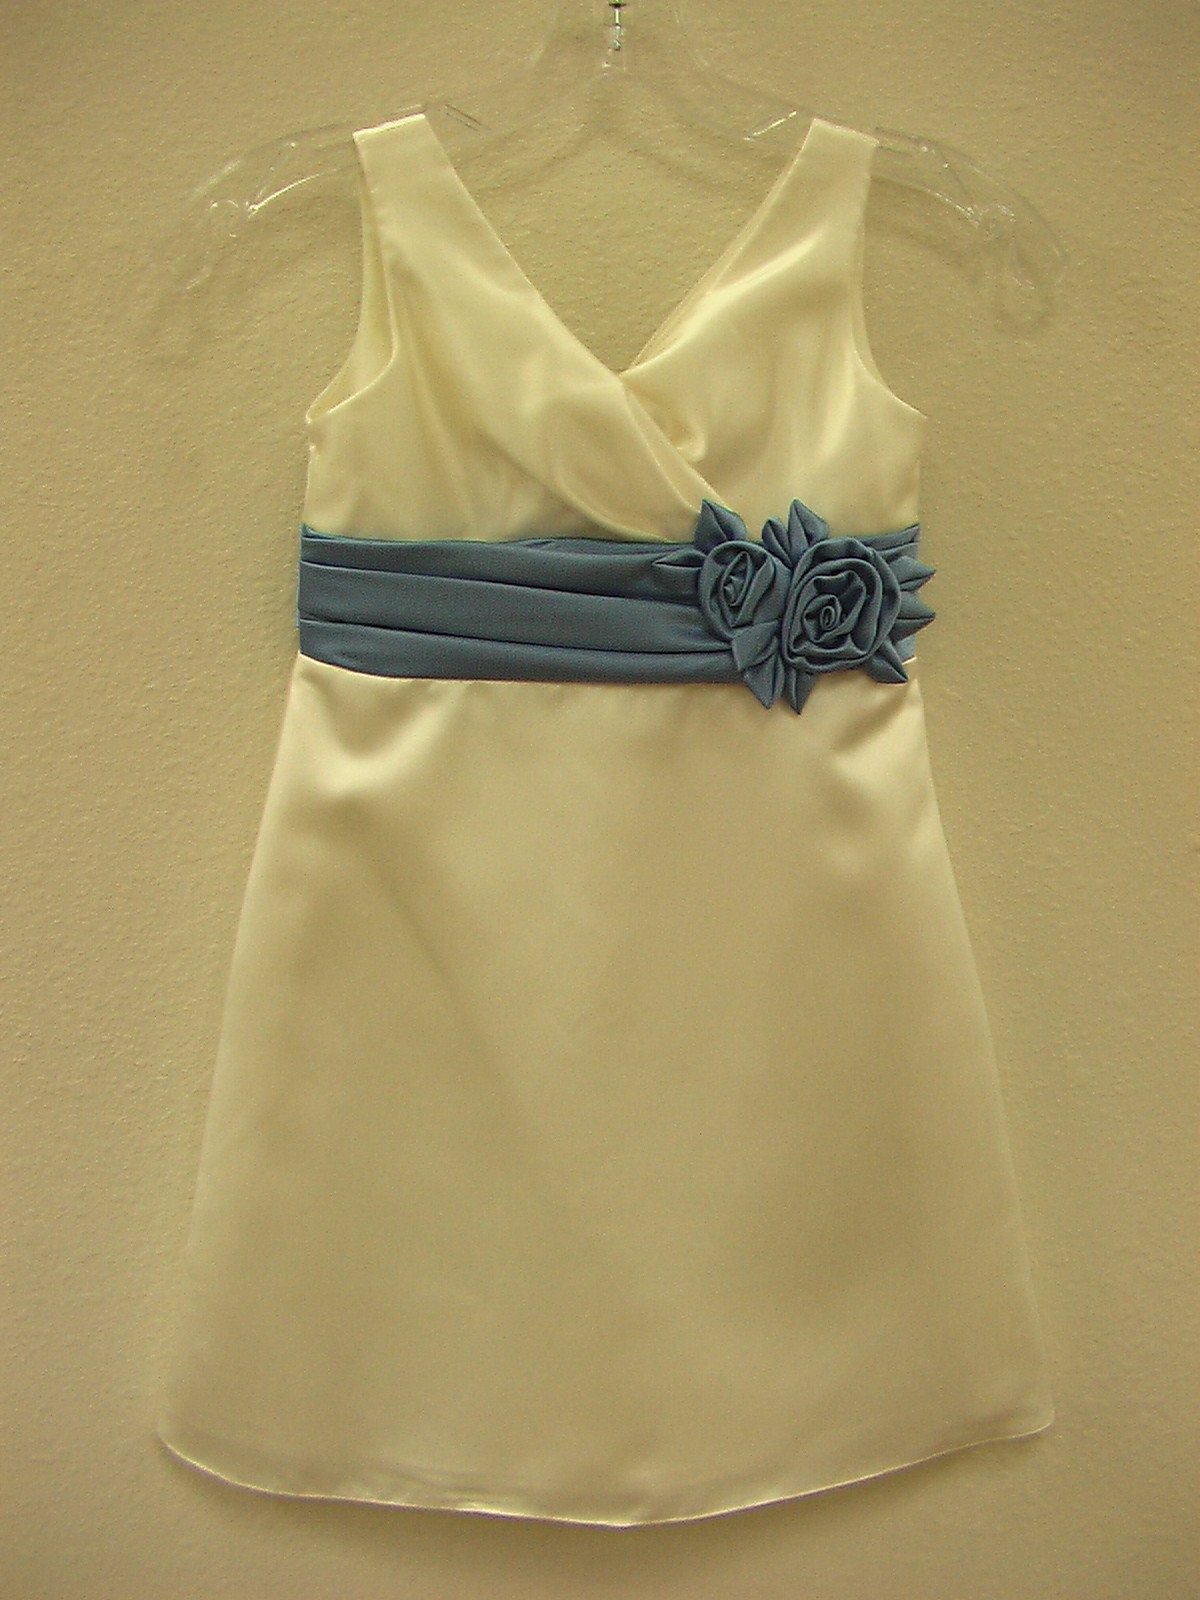 Watters 41281 Ivory/Heron size 5 In Stock Flower Girl Dress - Tom's Bridal